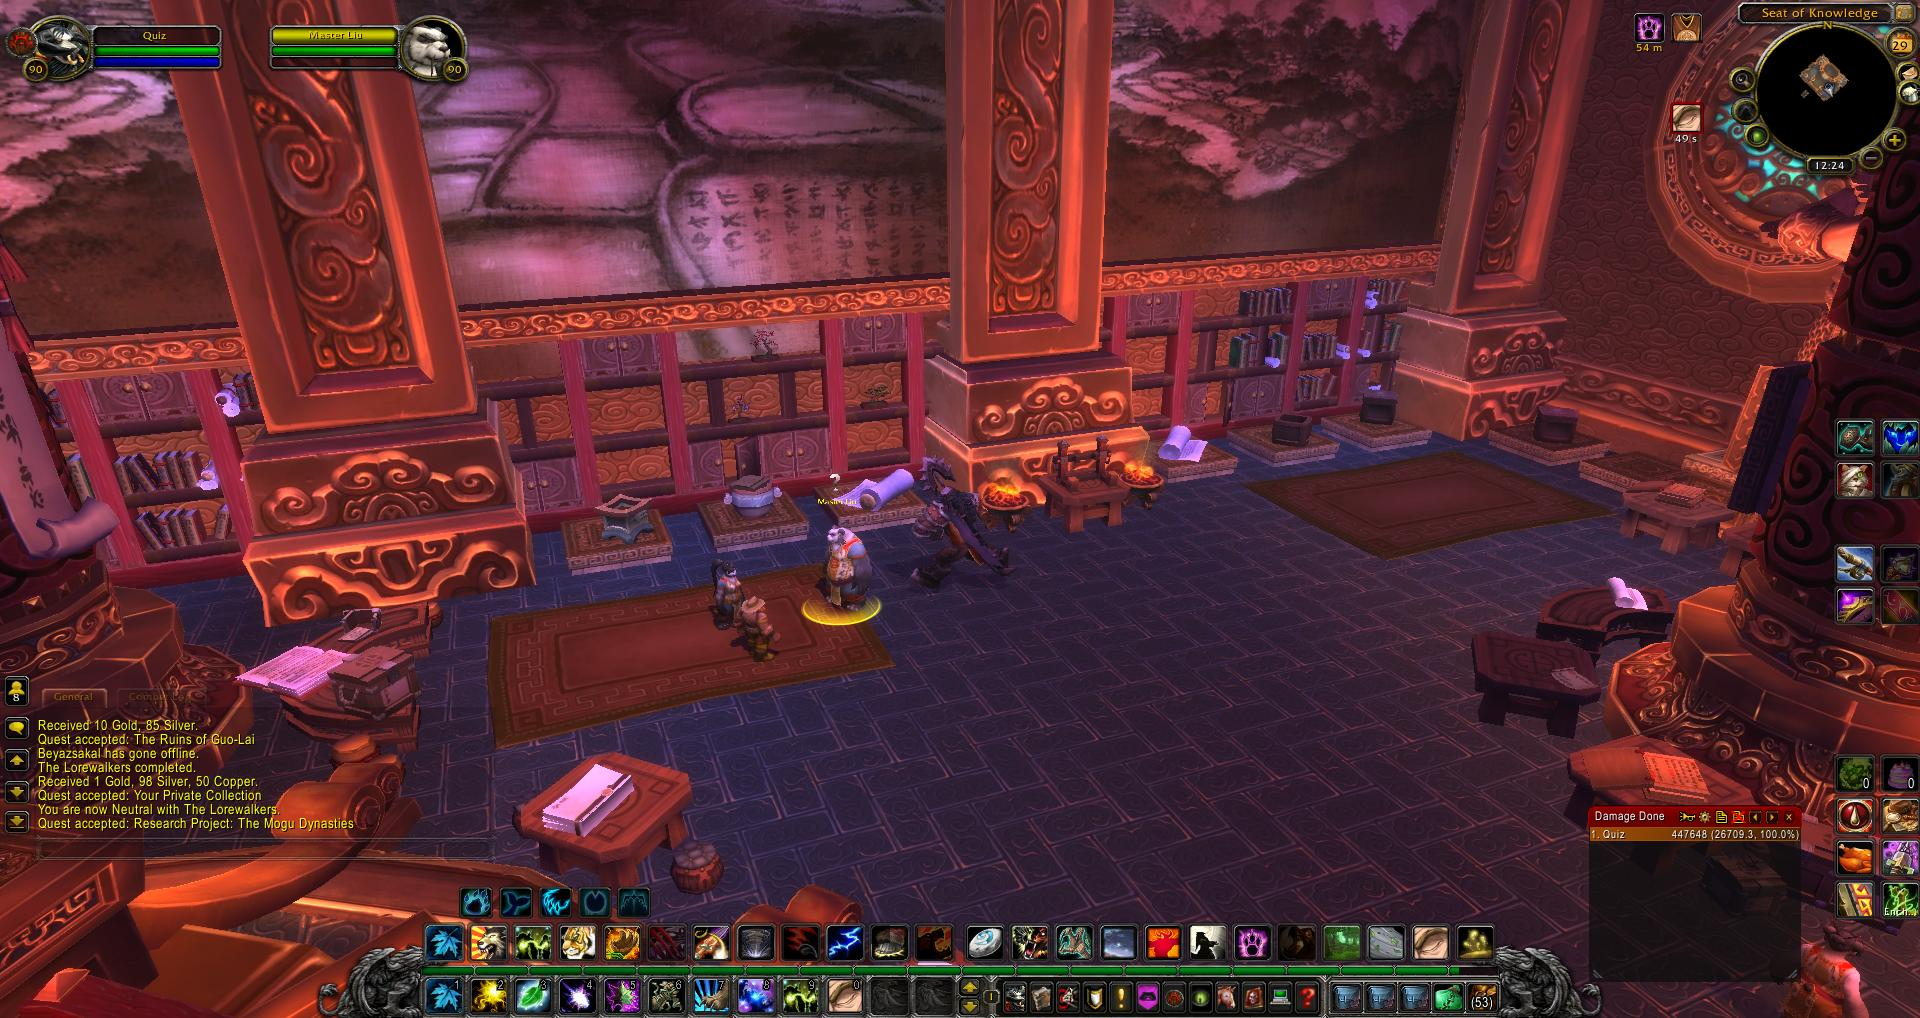 The Seat Of Knowledge : Seat of knowledge wow screenshot gamingcfg